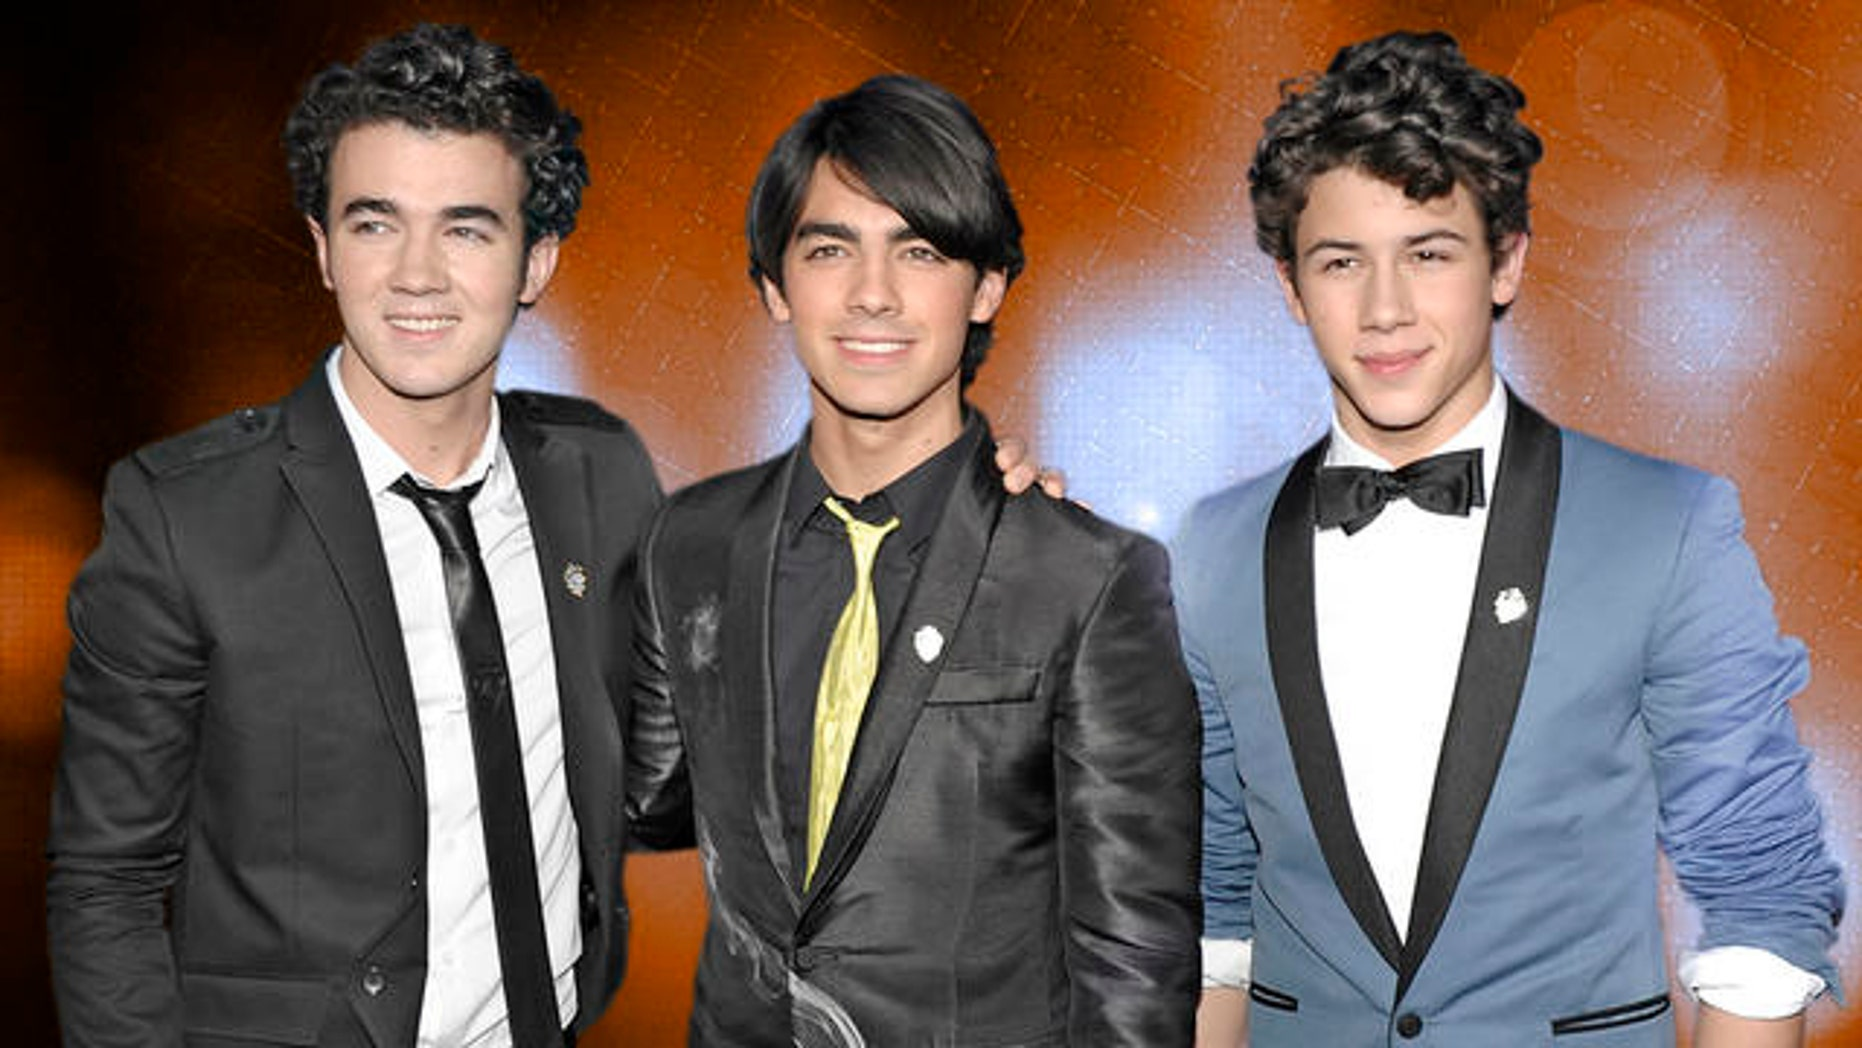 """From left, singer Kevin Jonas, singer Joe Jonas, and singer Nick Jonas pose on the press line at the premiere of """"Jonas Brothers: The 3D Concert Experience"""" in Hollywood, Calif. on Tuesday, Feb. 24, 2009. (AP Photo/Dan Steinberg)"""